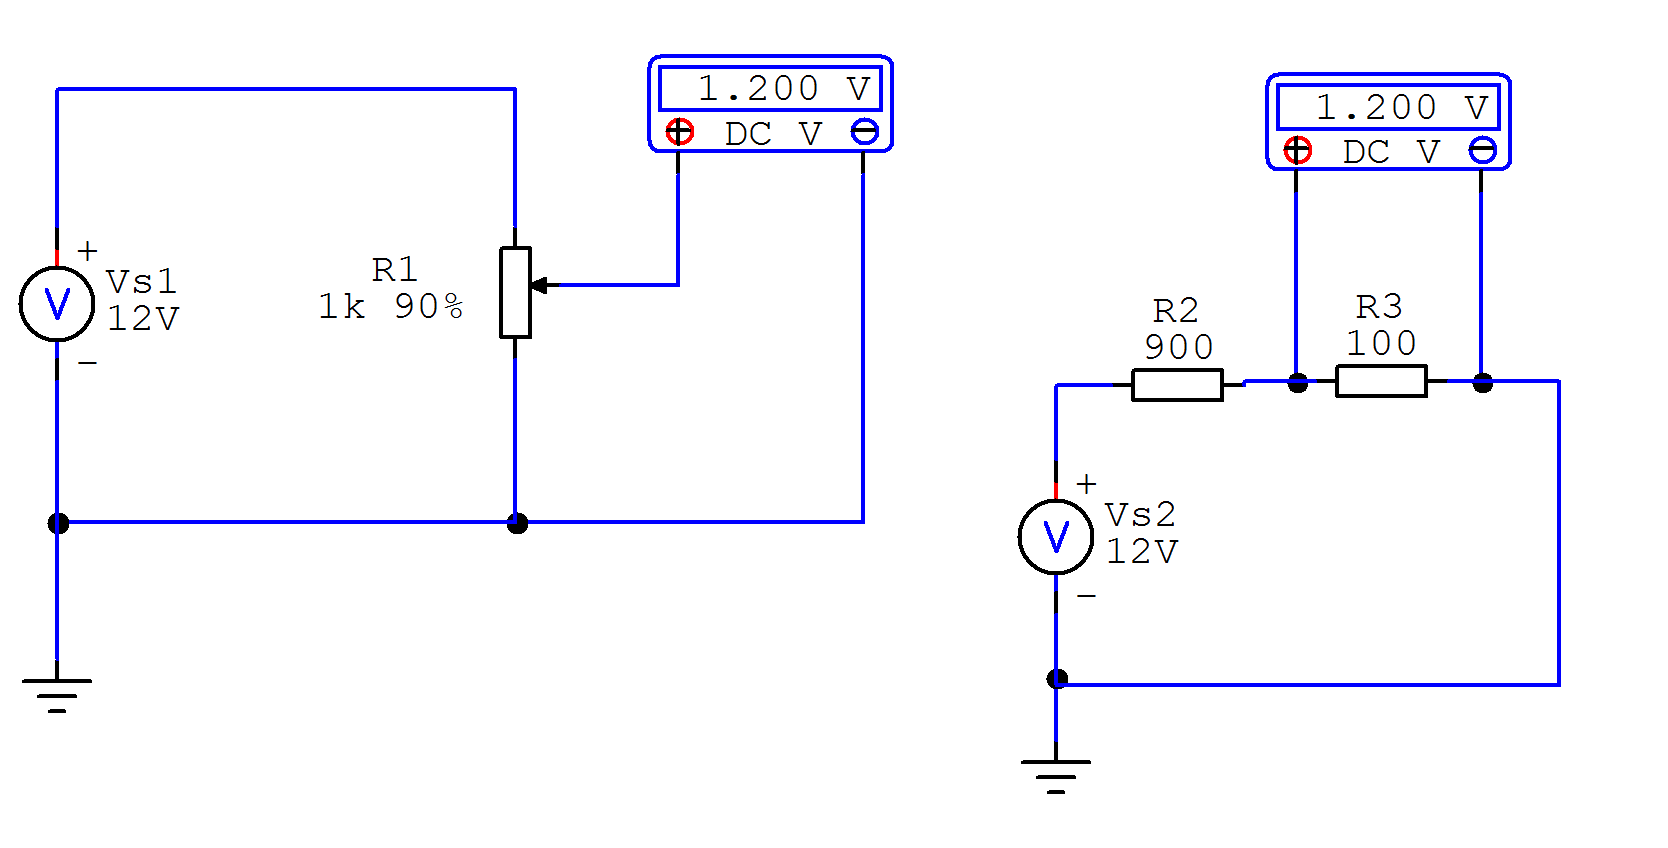 solved eagle 8 5 2 potentiometer simulation does not work displaying 17 gallery images for potentiometer schematic symbol [ 1668 x 848 Pixel ]